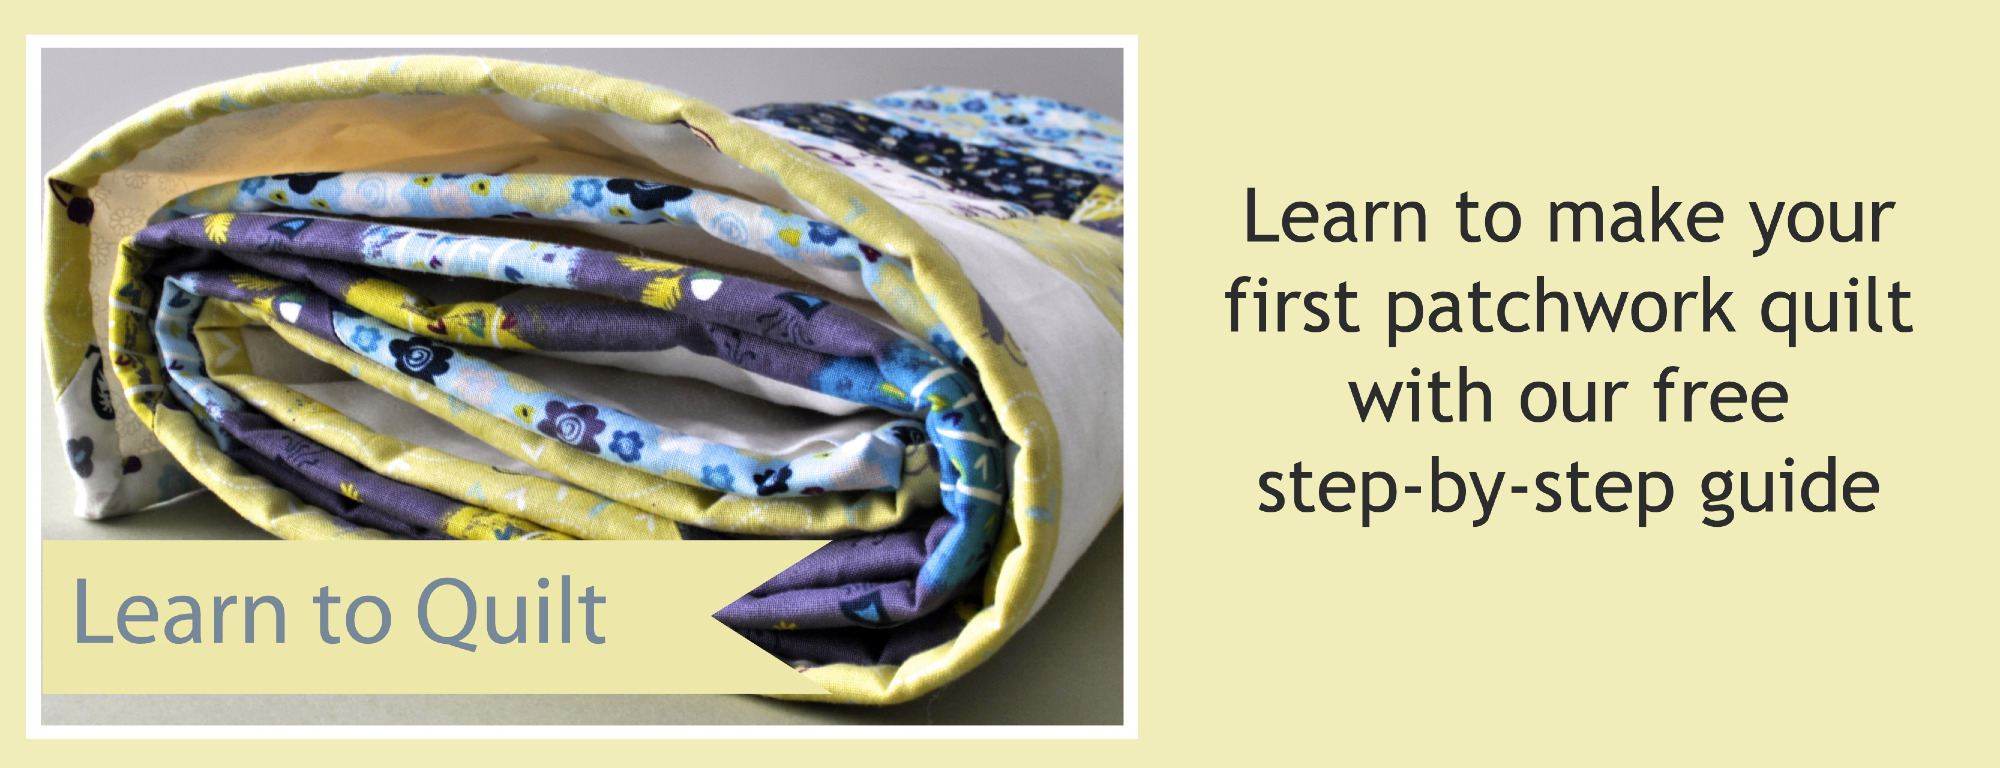 learn to quilt banner page